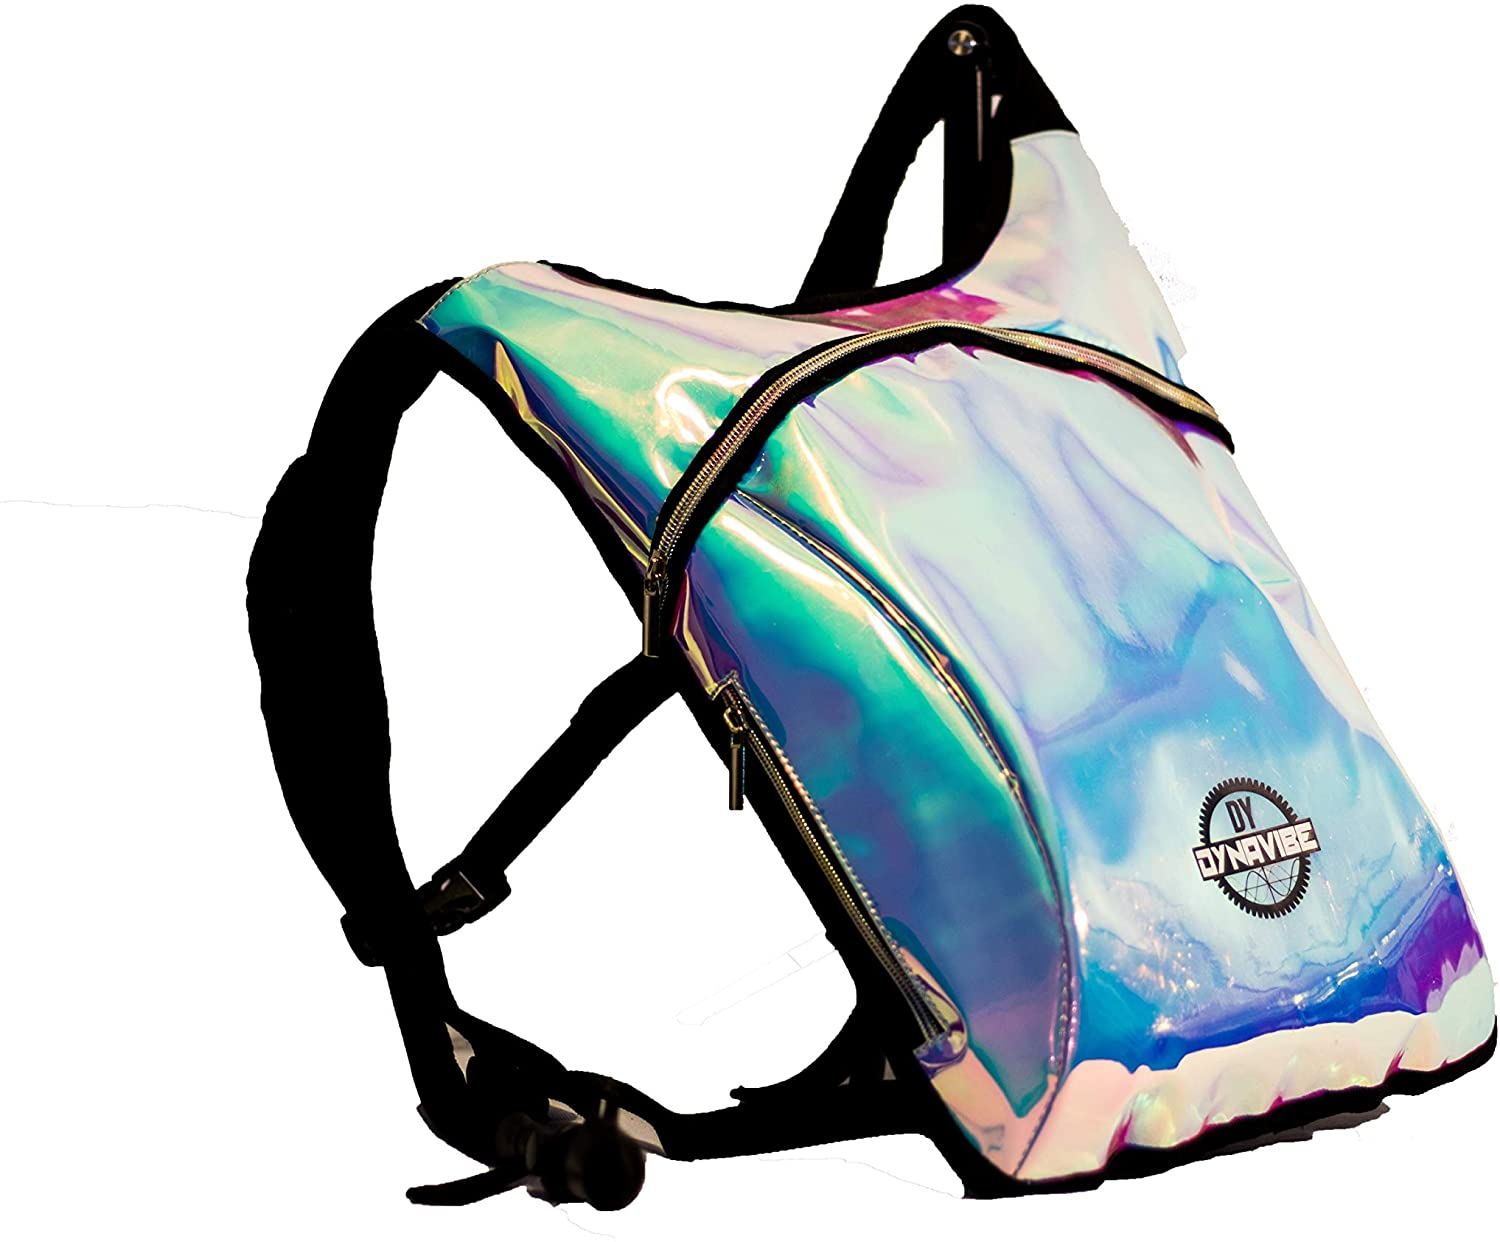 Hydration Pack Backpack – 2L Water Bladder Included for Festivals, Raves, Hiking, Biking, Climbing, Running and More